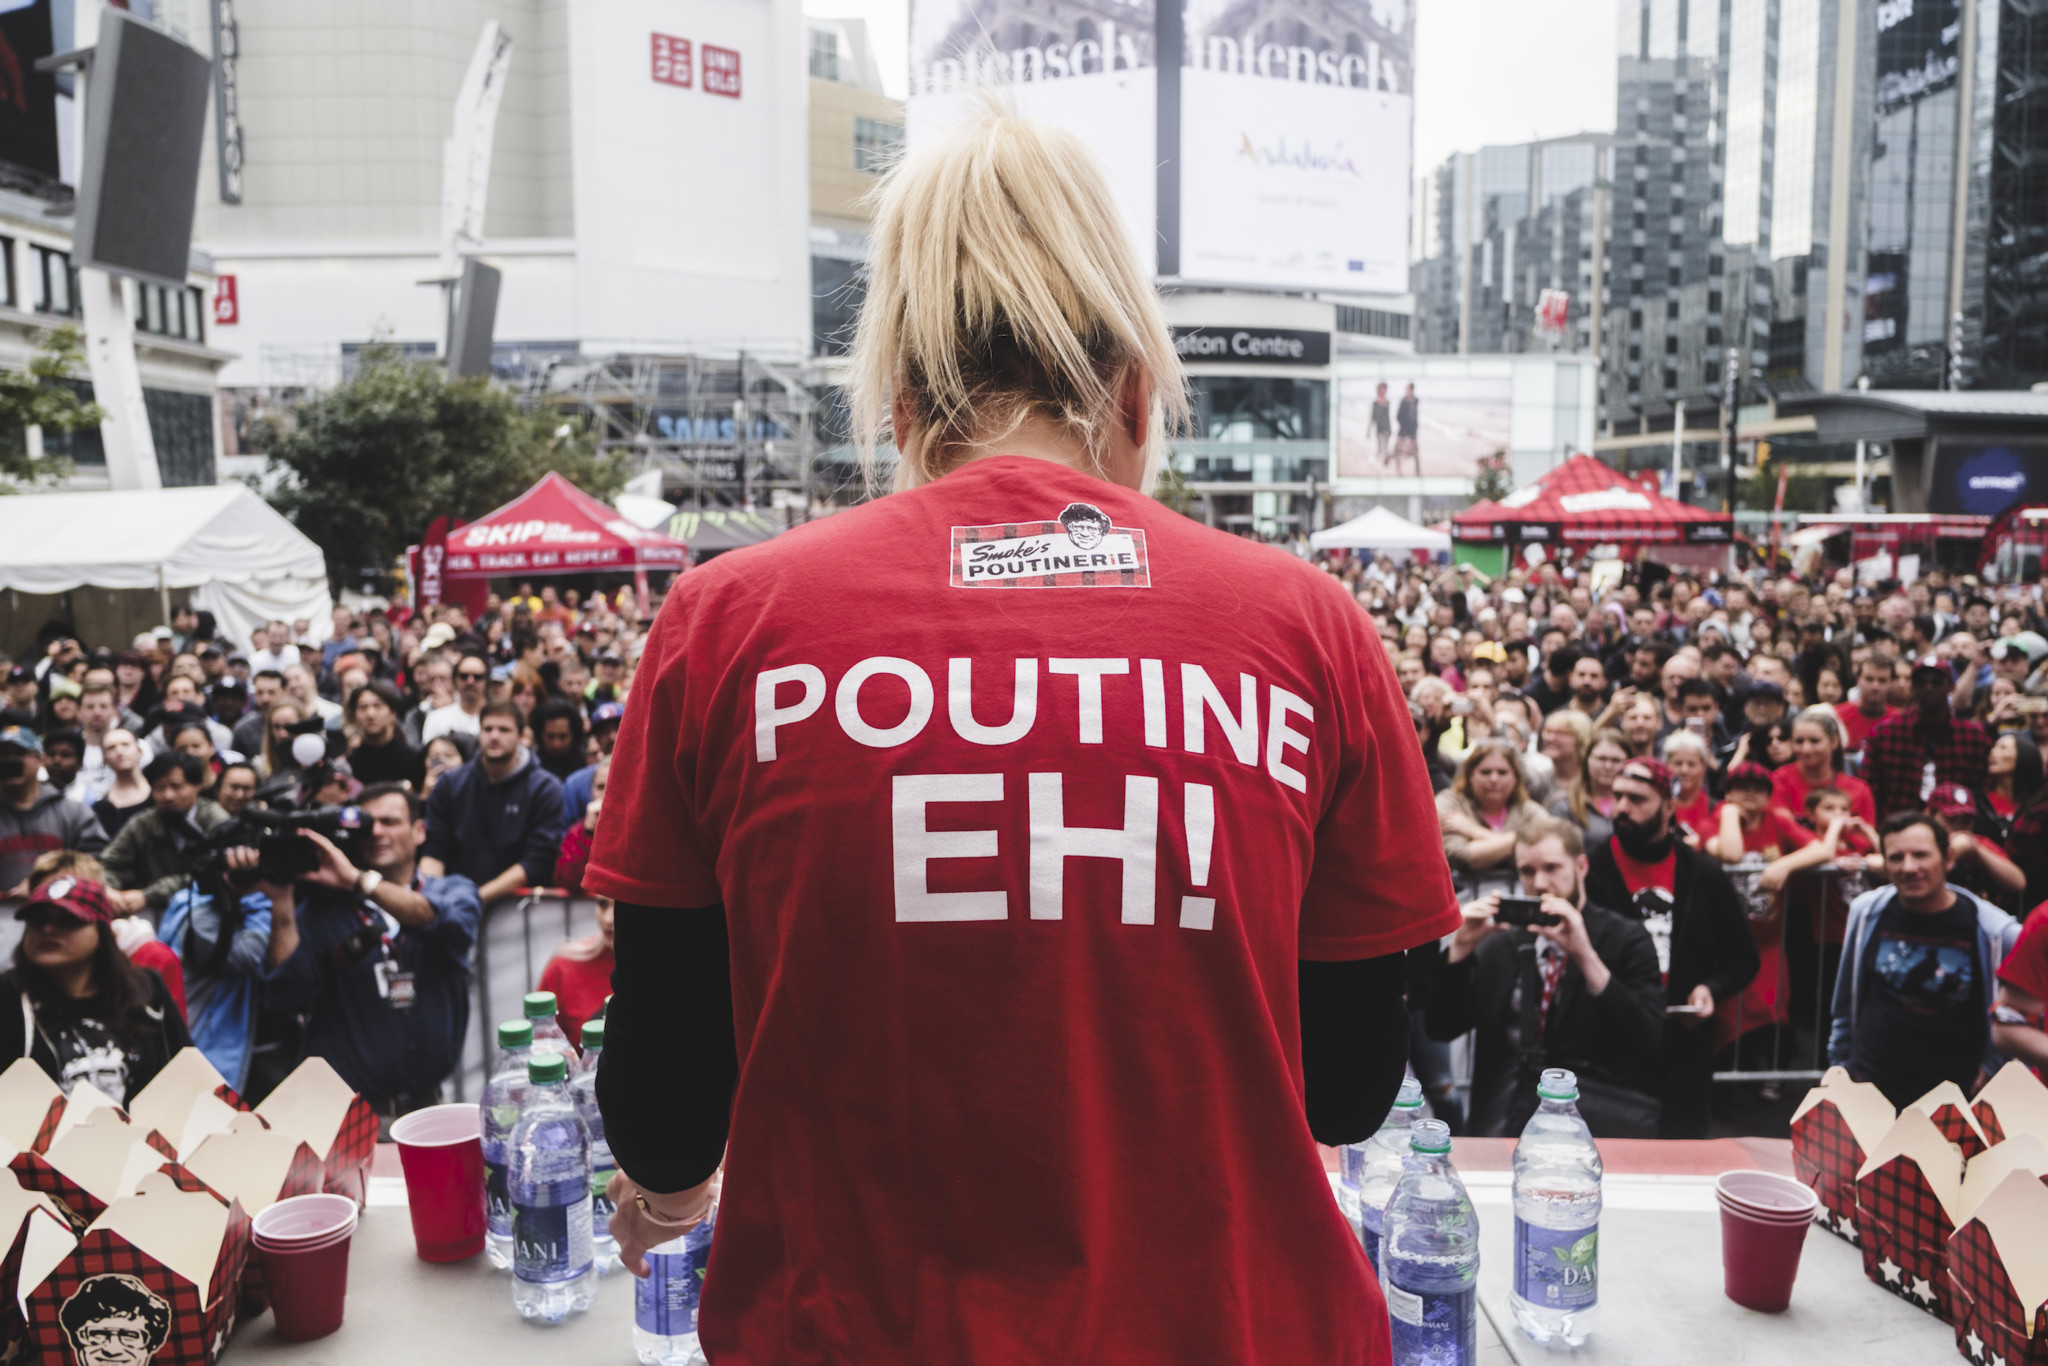 Smoke's Poutinerie World Poutine Eating Championship Is Coming, Featuring World #1 Ranked Eater, Joey 'Jaws' Chestnut